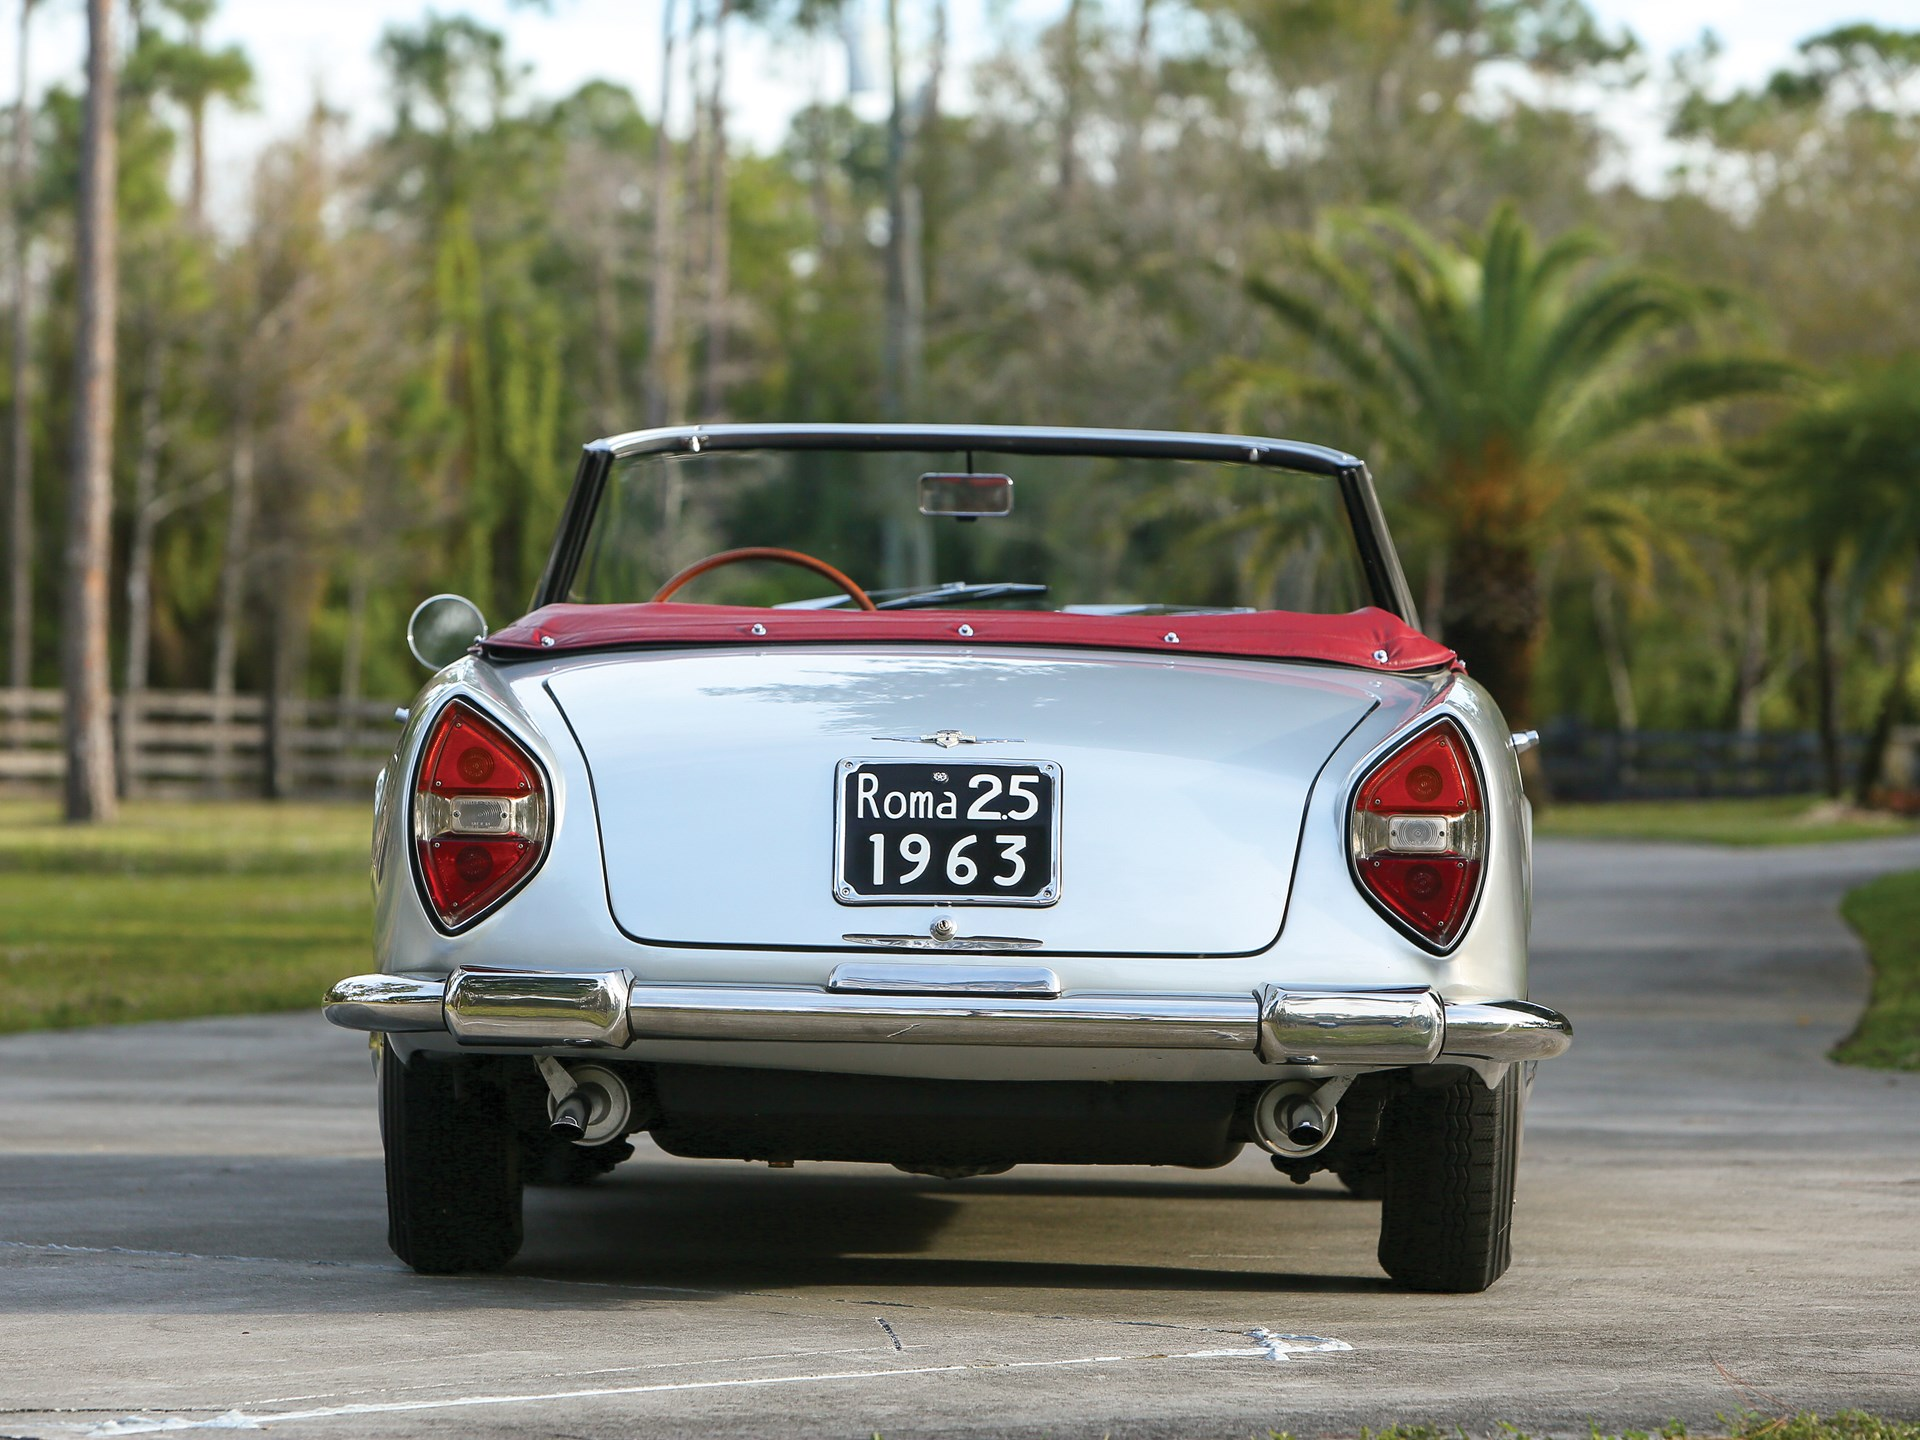 1963 Lancia Flaminia 3C 2.5 Cabriolet by Touring